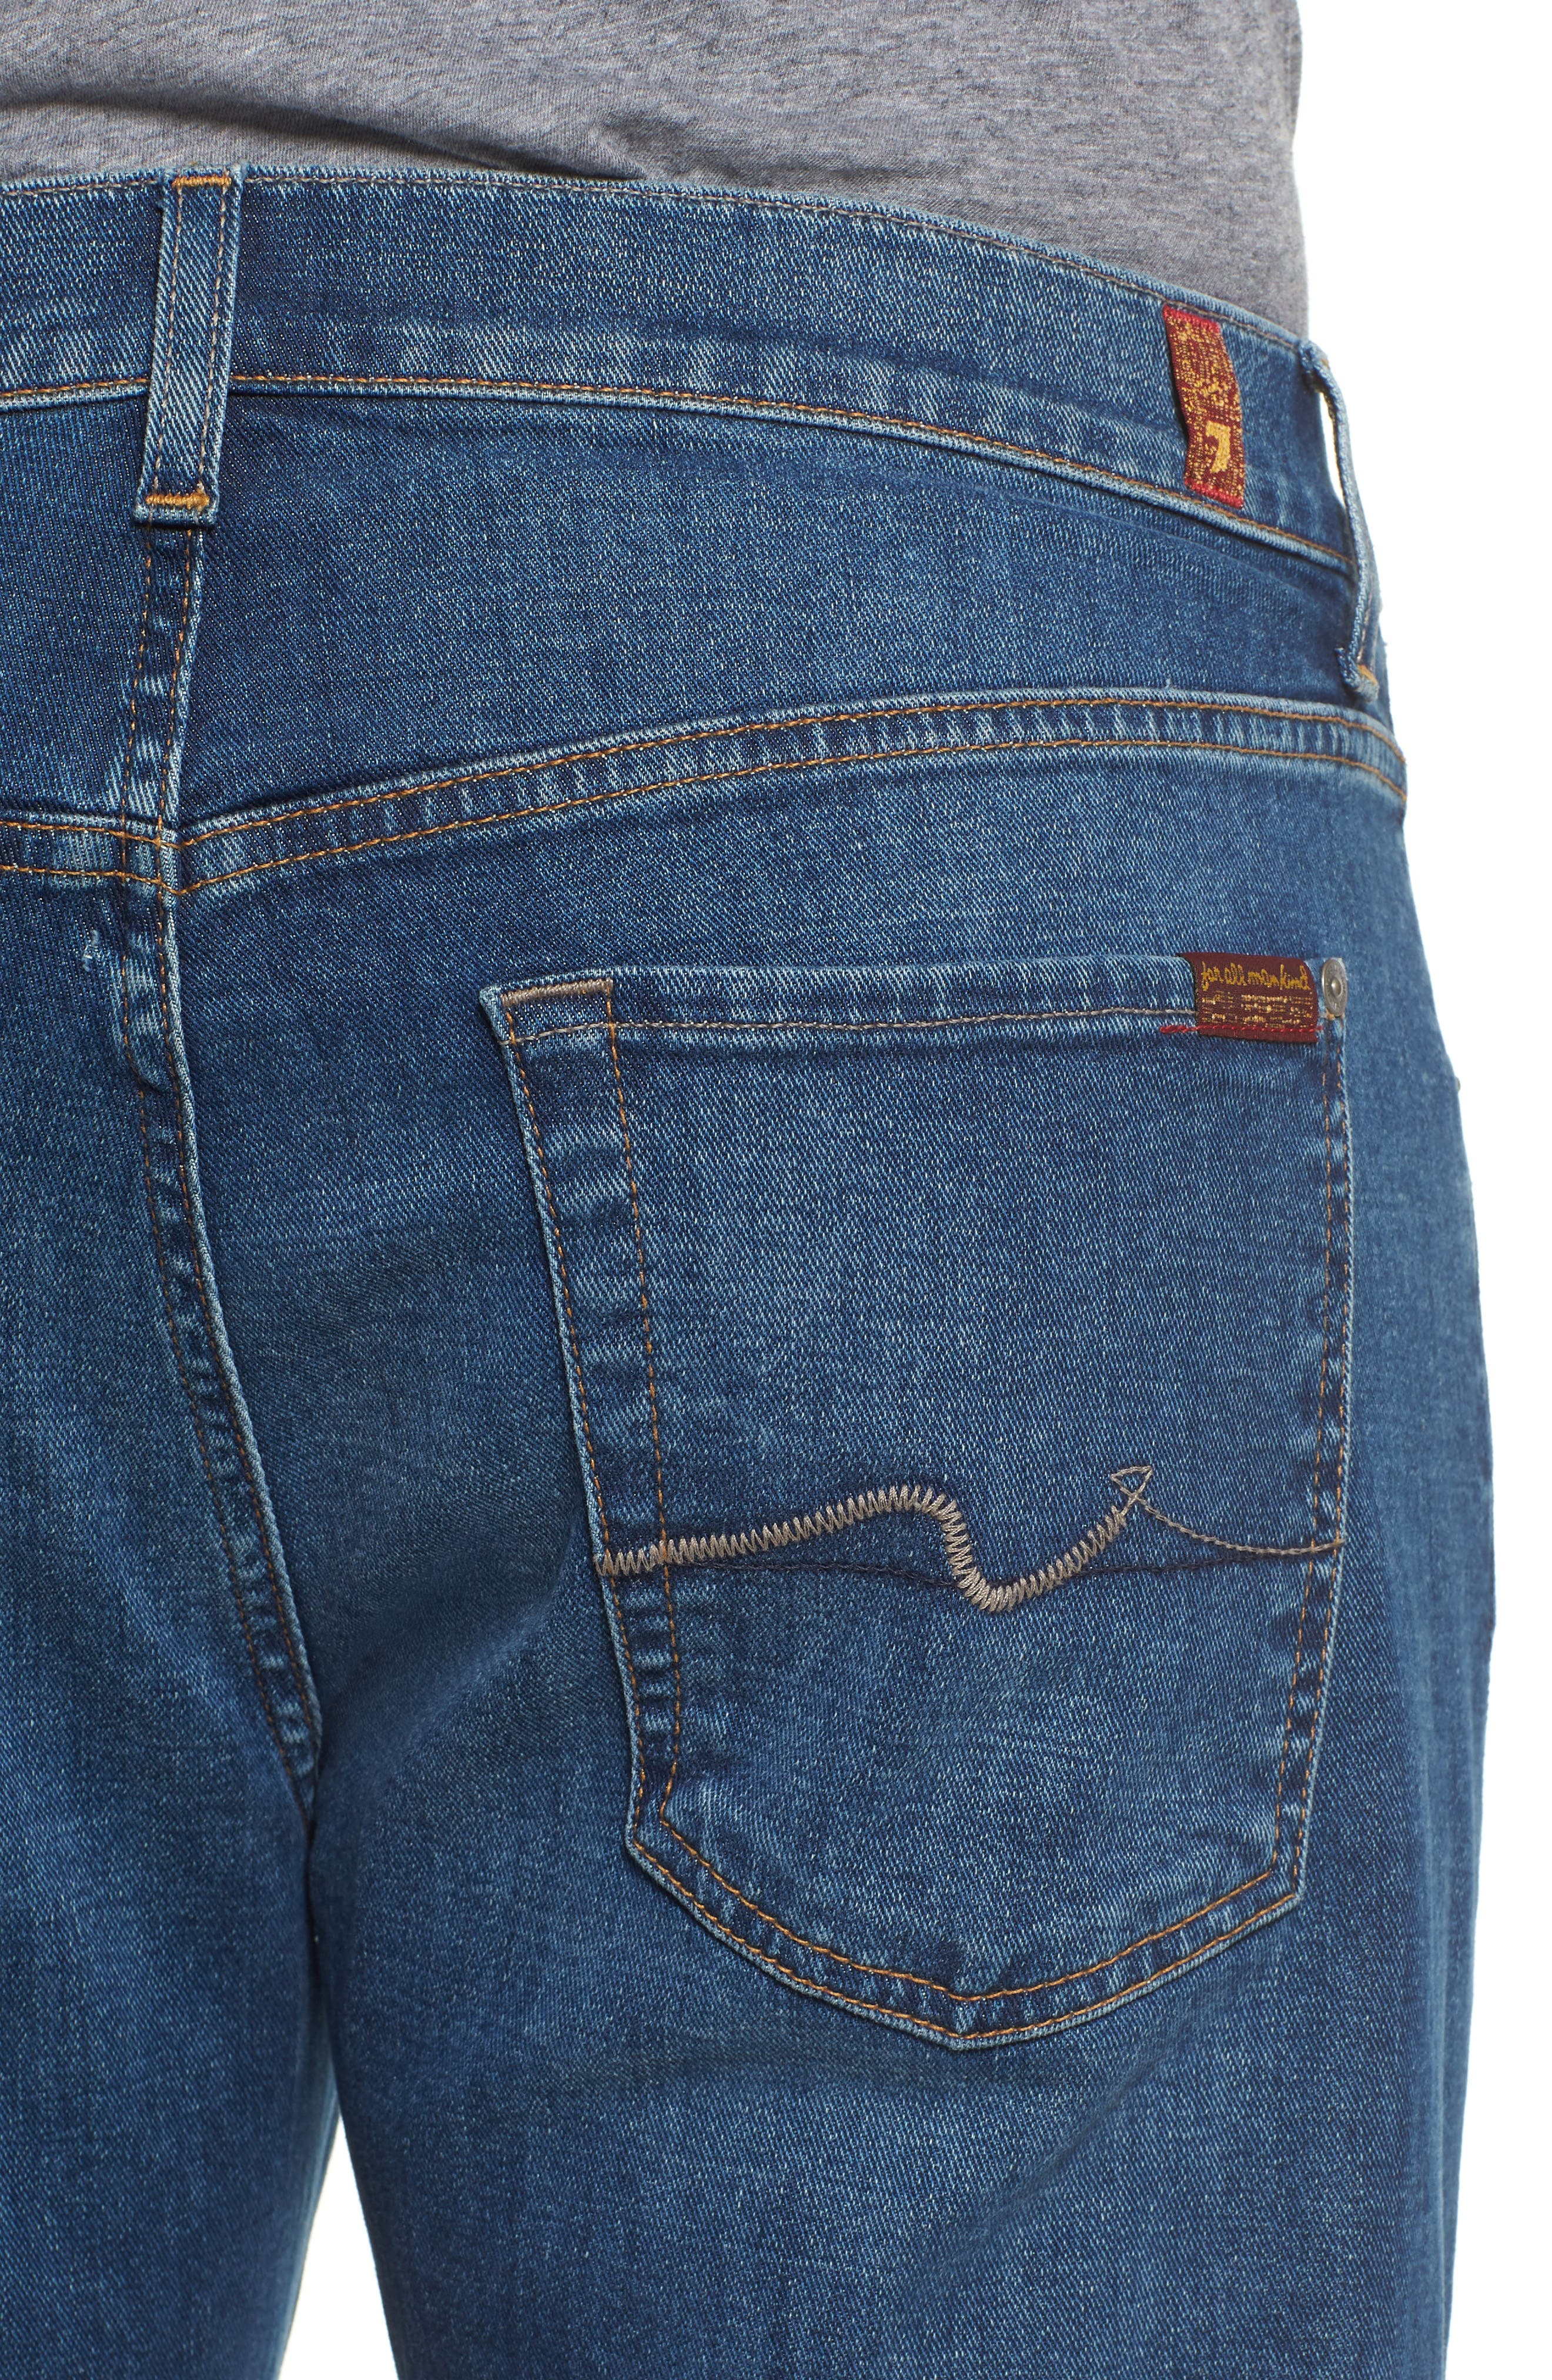 Austyn Relaxed Fit Jeans,                             Alternate thumbnail 4, color,                             Oasis